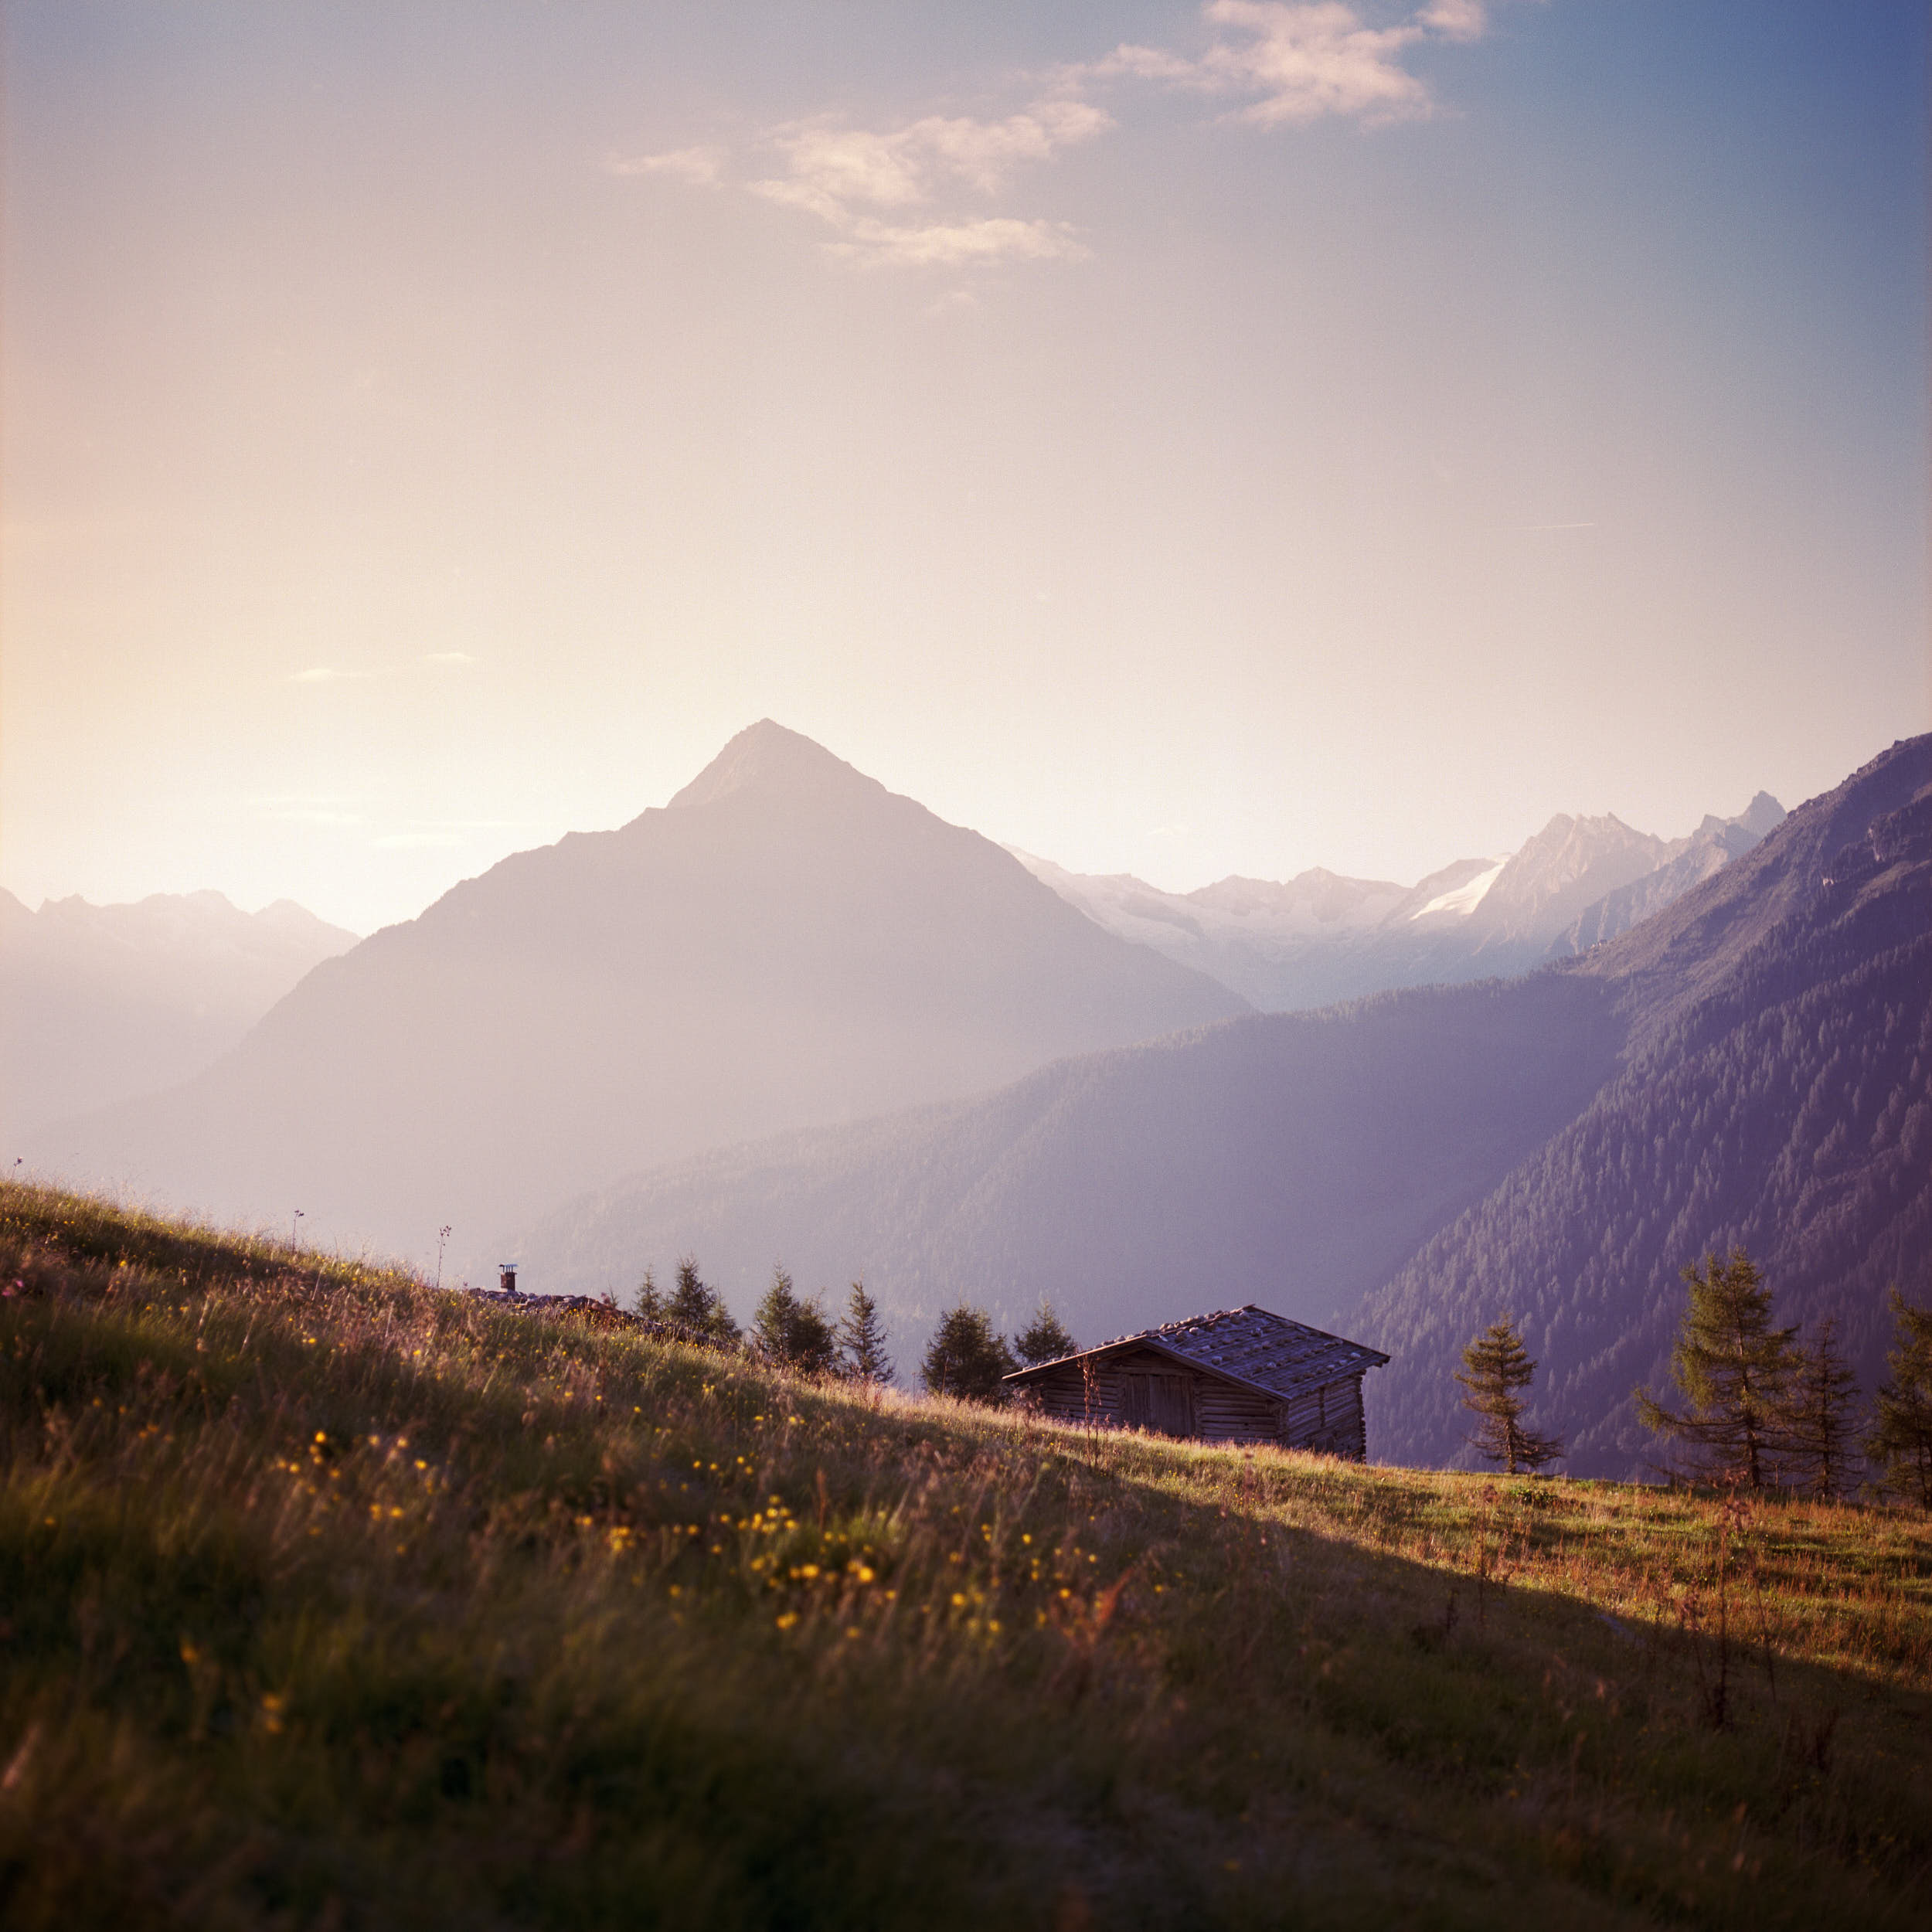 Beautiful landscape photography: morning sunlight hitting alpine peaks with an old wooden shed in foreground.